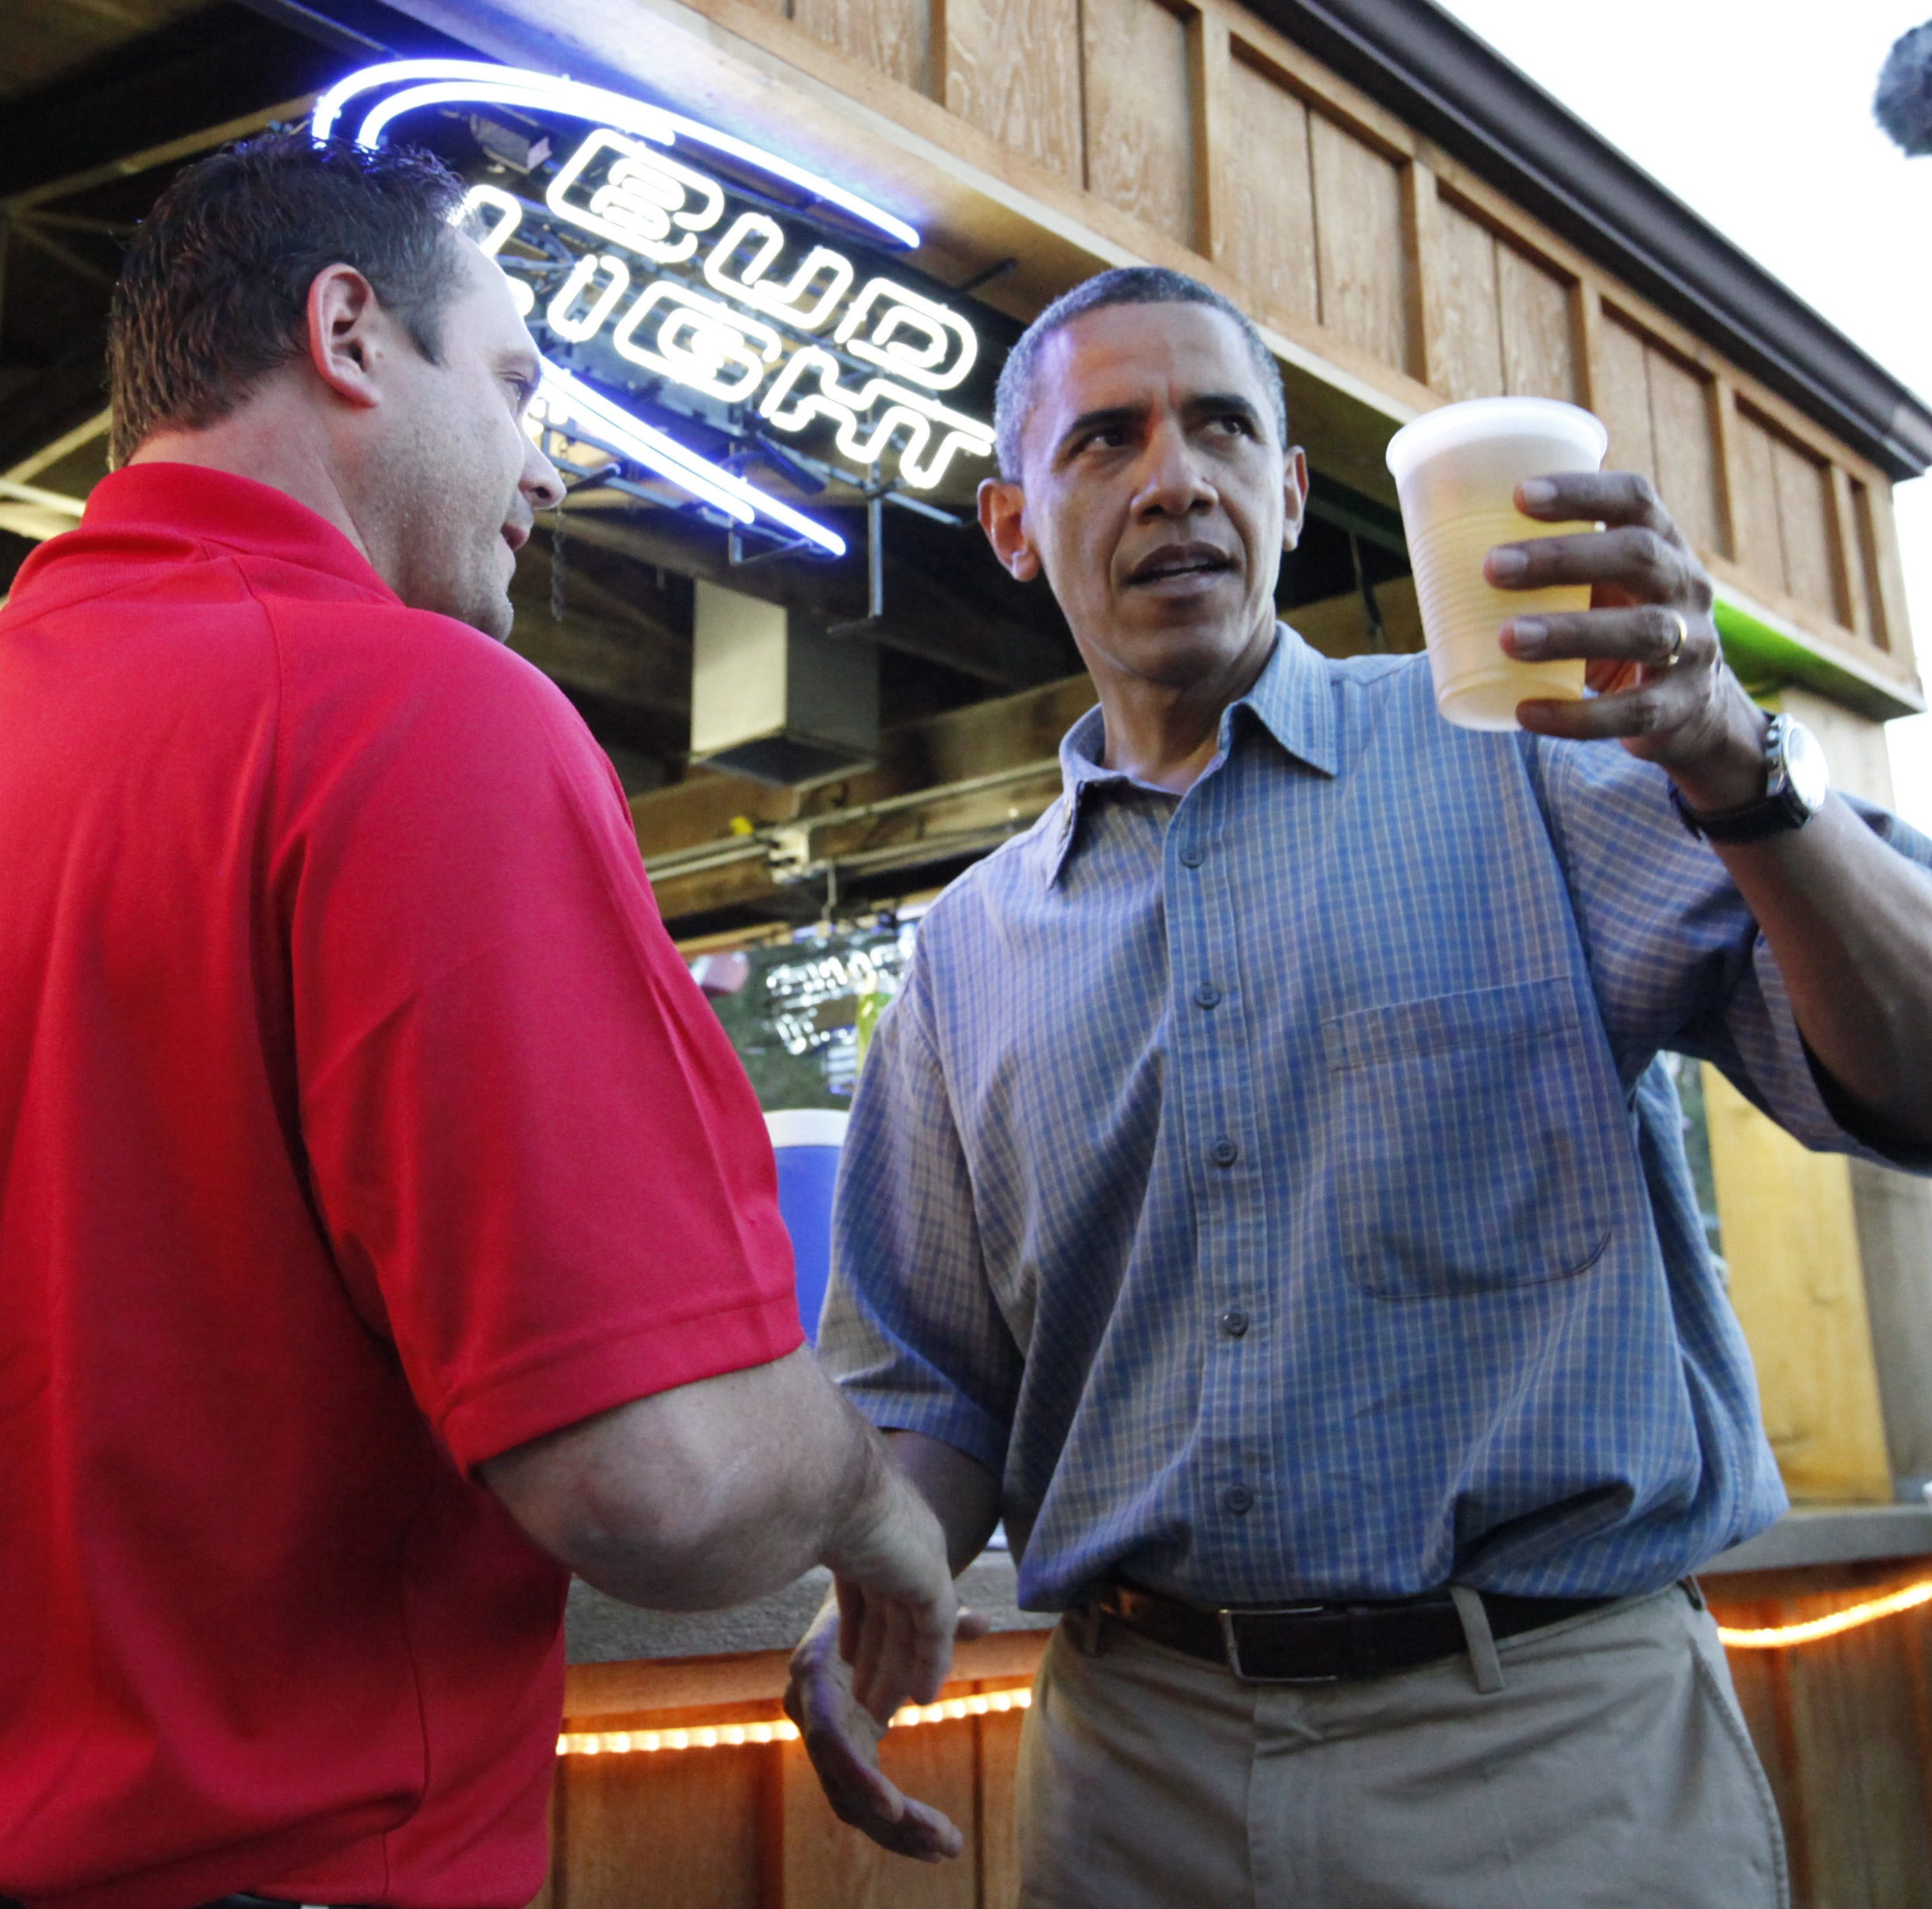 Former President Obama endorses Iowa candidates Fred Hubbell, Cindy Axne and Abby Finkenauer